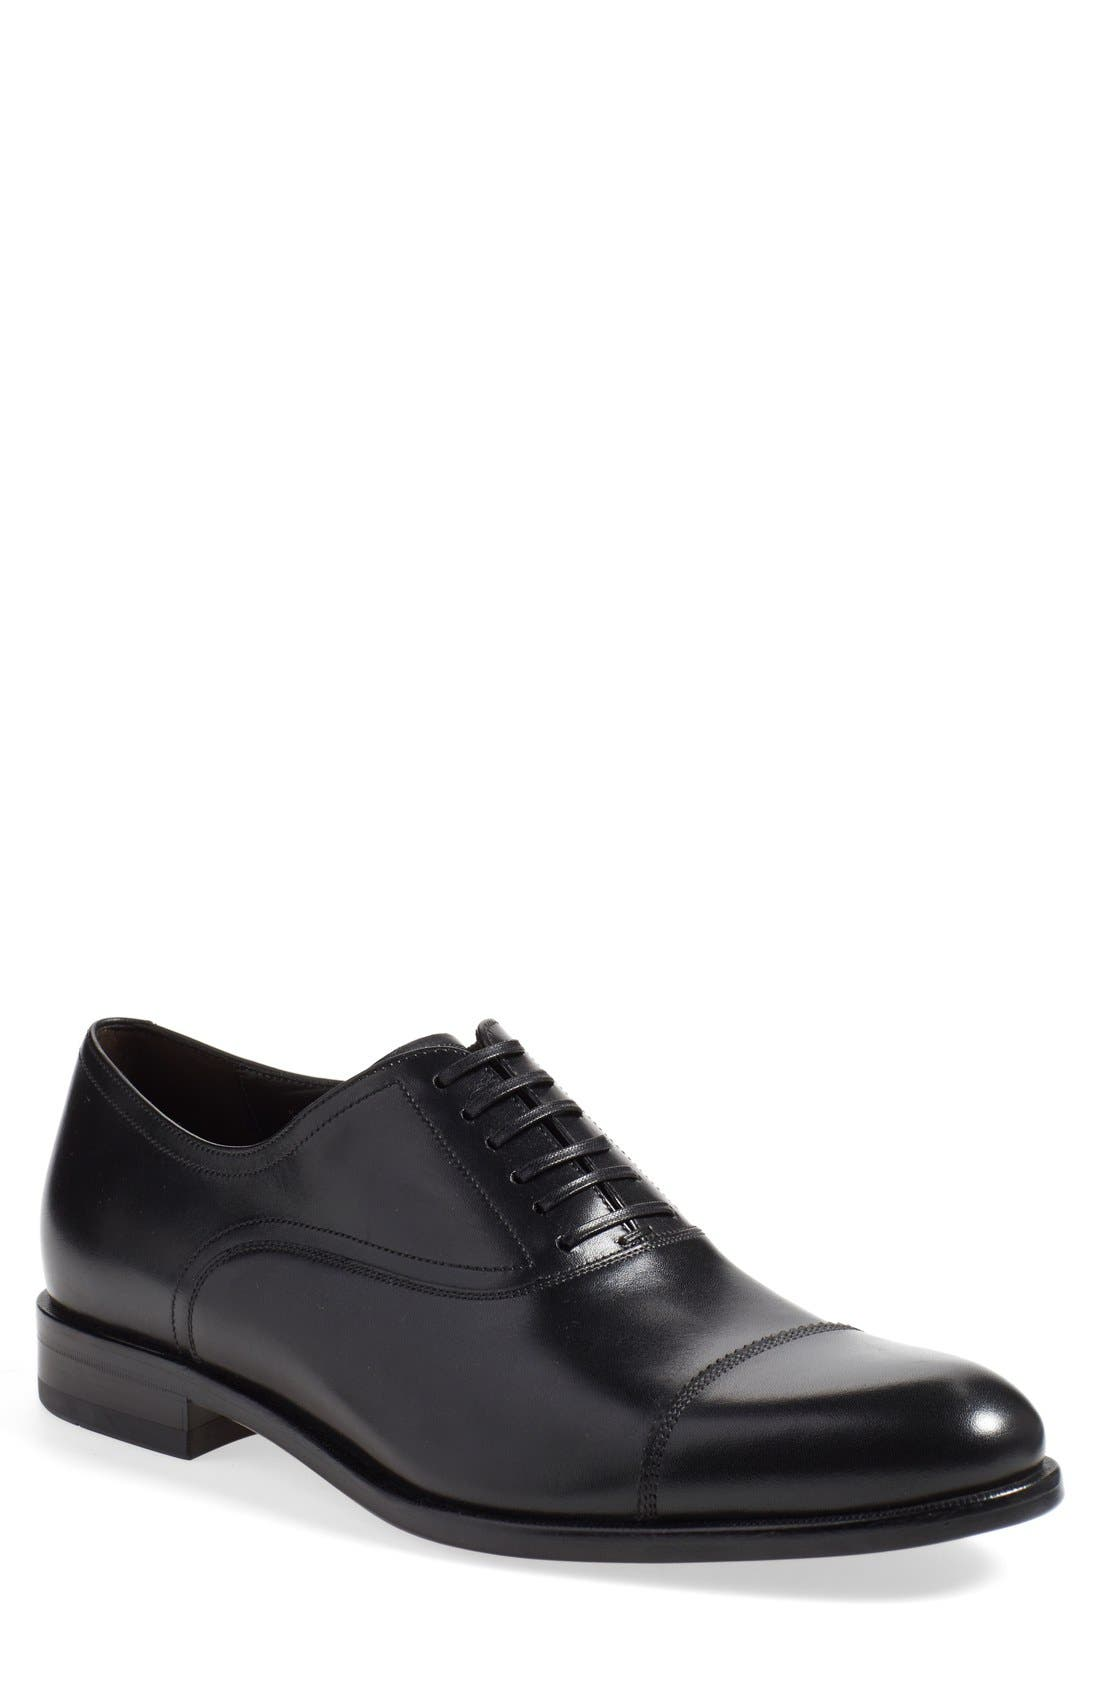 Salvatore Ferragamo 'Guru' Cap Toe Oxford (Men)